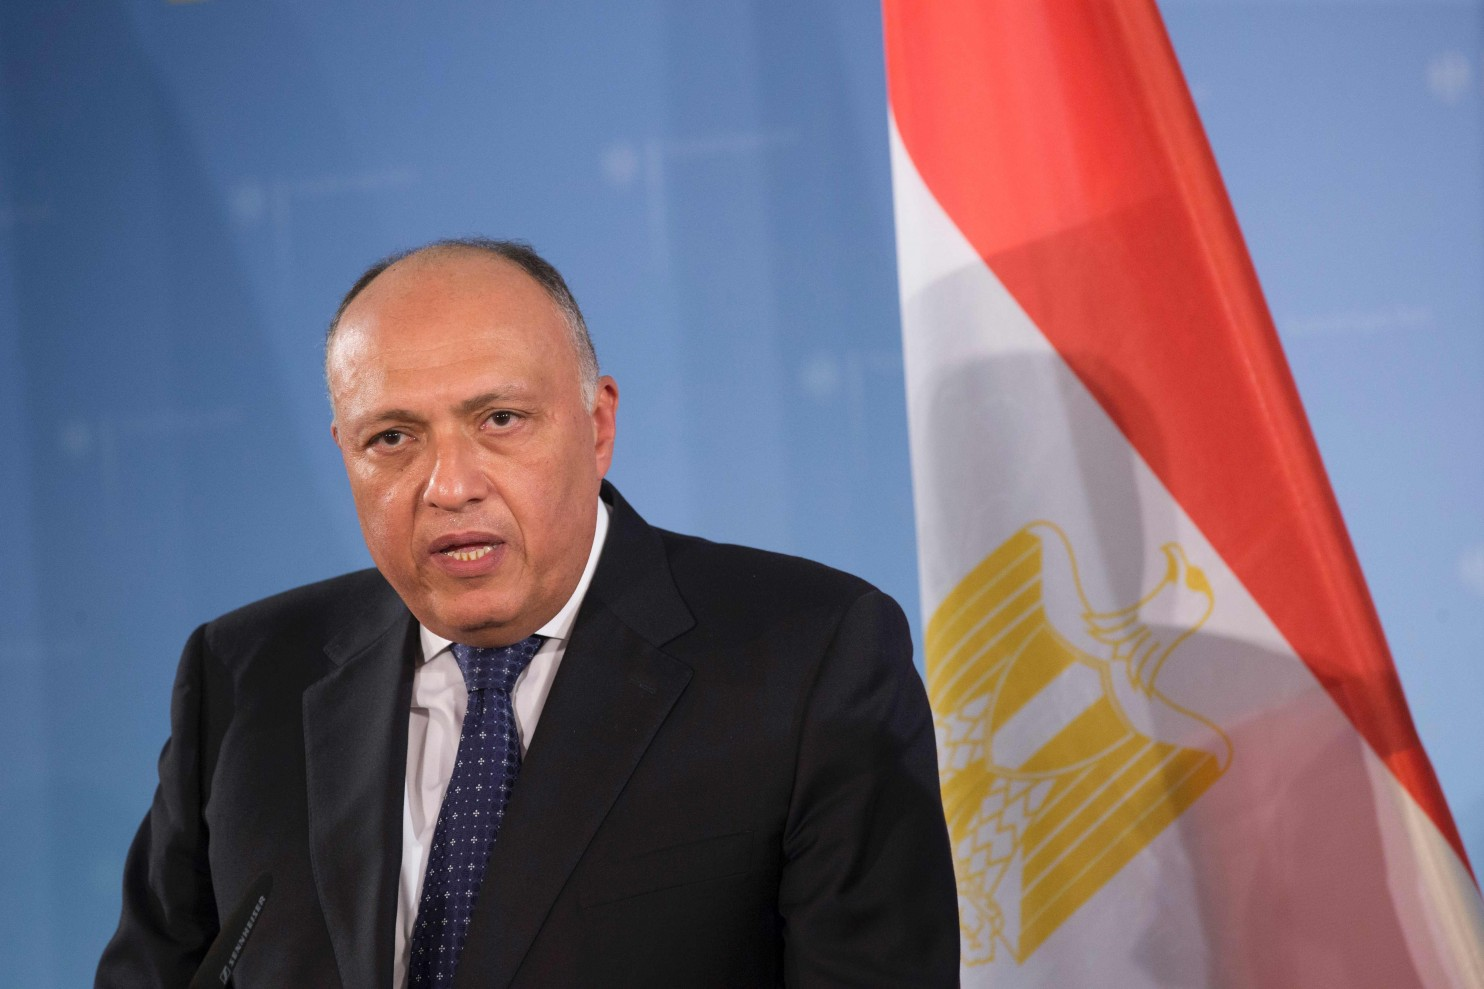 Sameh Shoukry at a press conference in Berlin in January 2016 (Axel Schmidt/AFP/Getty Images)